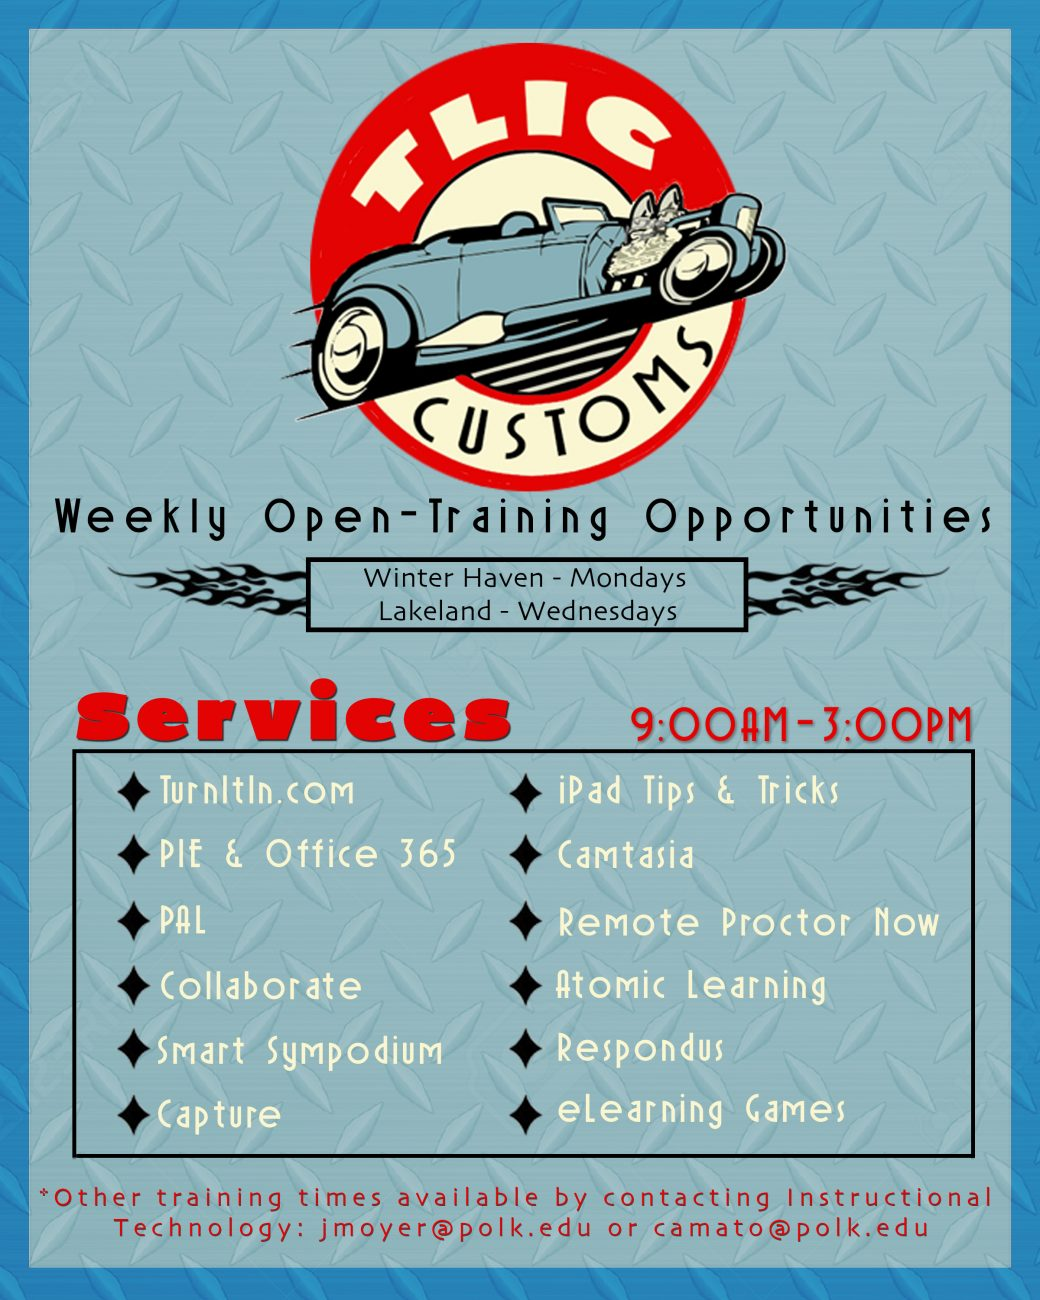 TLIC Customs - Weekly Open-Training Opportunities (Winter Haven on Mondays and Lakeland on Wednesdays) from 9:00 am to 3:00 pm.  The services offered include turnitin, PIE, Office 365, PAL, Collaborate, Smart Sympodium, Capture, iPad tips and tricks, remote proctor now, Atomic Learning, Respondus, eLearning Games.  Contact jmoyer@polk.edu or camato@polk.edu with questions.